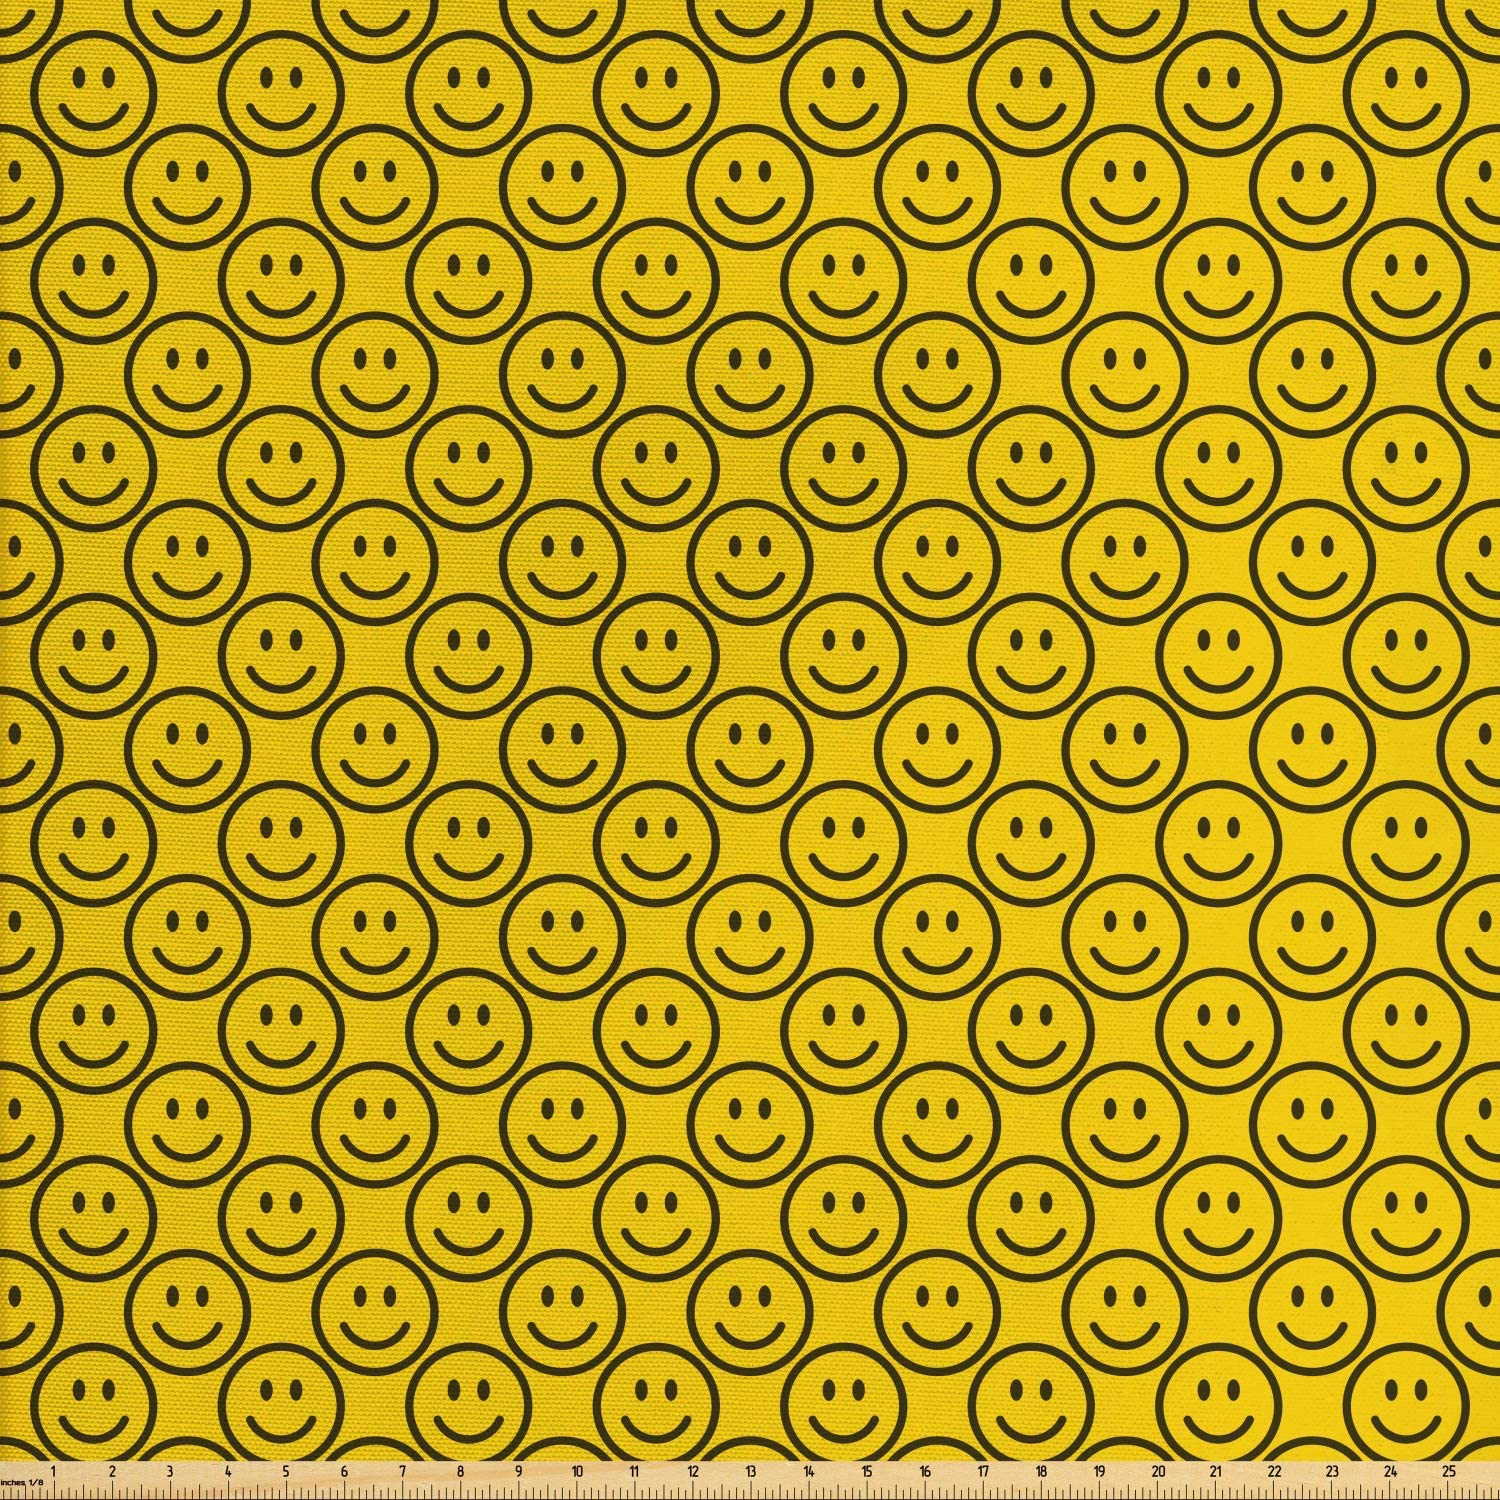 Ambesonne Emoji Fabric by The Yard, Flat Smiley Faces Expressing Happiness in Diagonal Order Joyful Childhood, Decorative Fabric for Upholstery and Home Accents, 3 Yards, Yellow Green